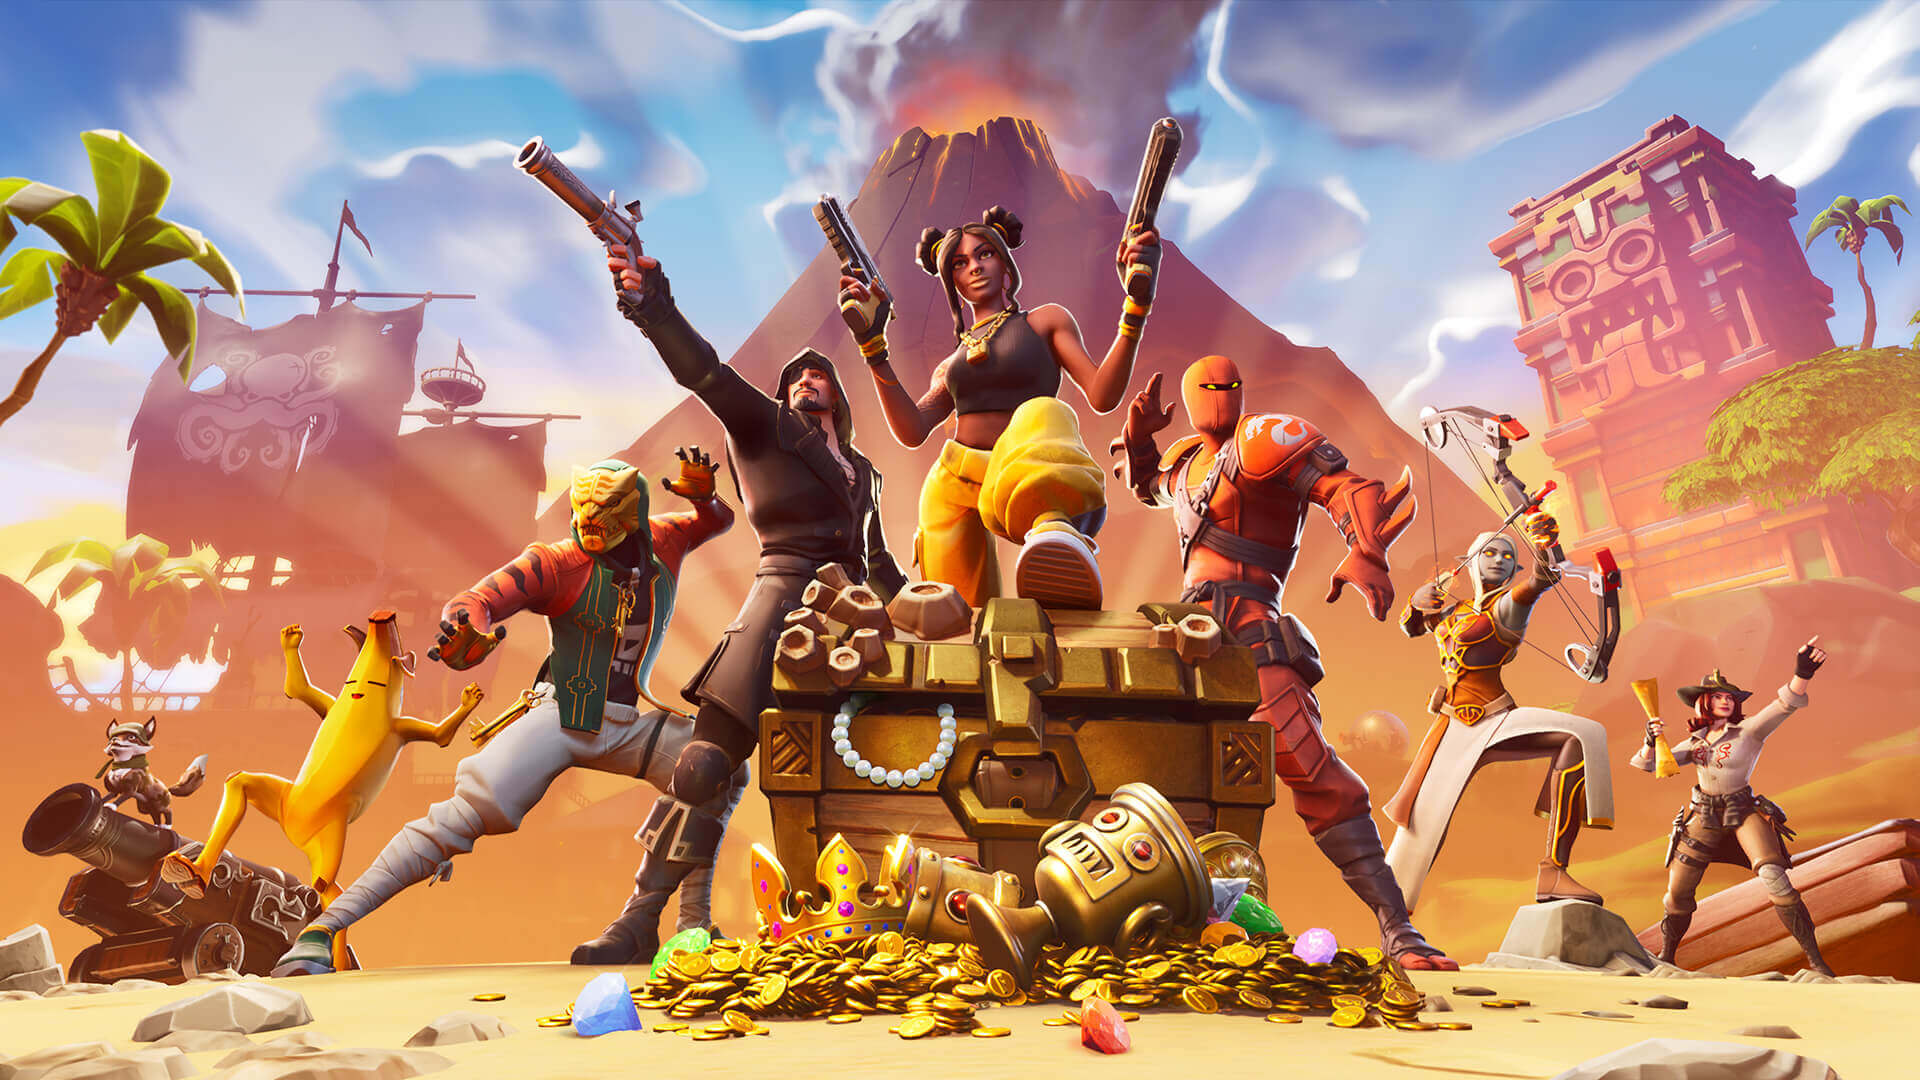 Fortnite Tracker The Best Fortnite Stats Tracker Out There 2020 Gaming Pirate Fortnite tracker gives you the opportunity to get the most information about your achievements in the game. the best fortnite stats tracker out